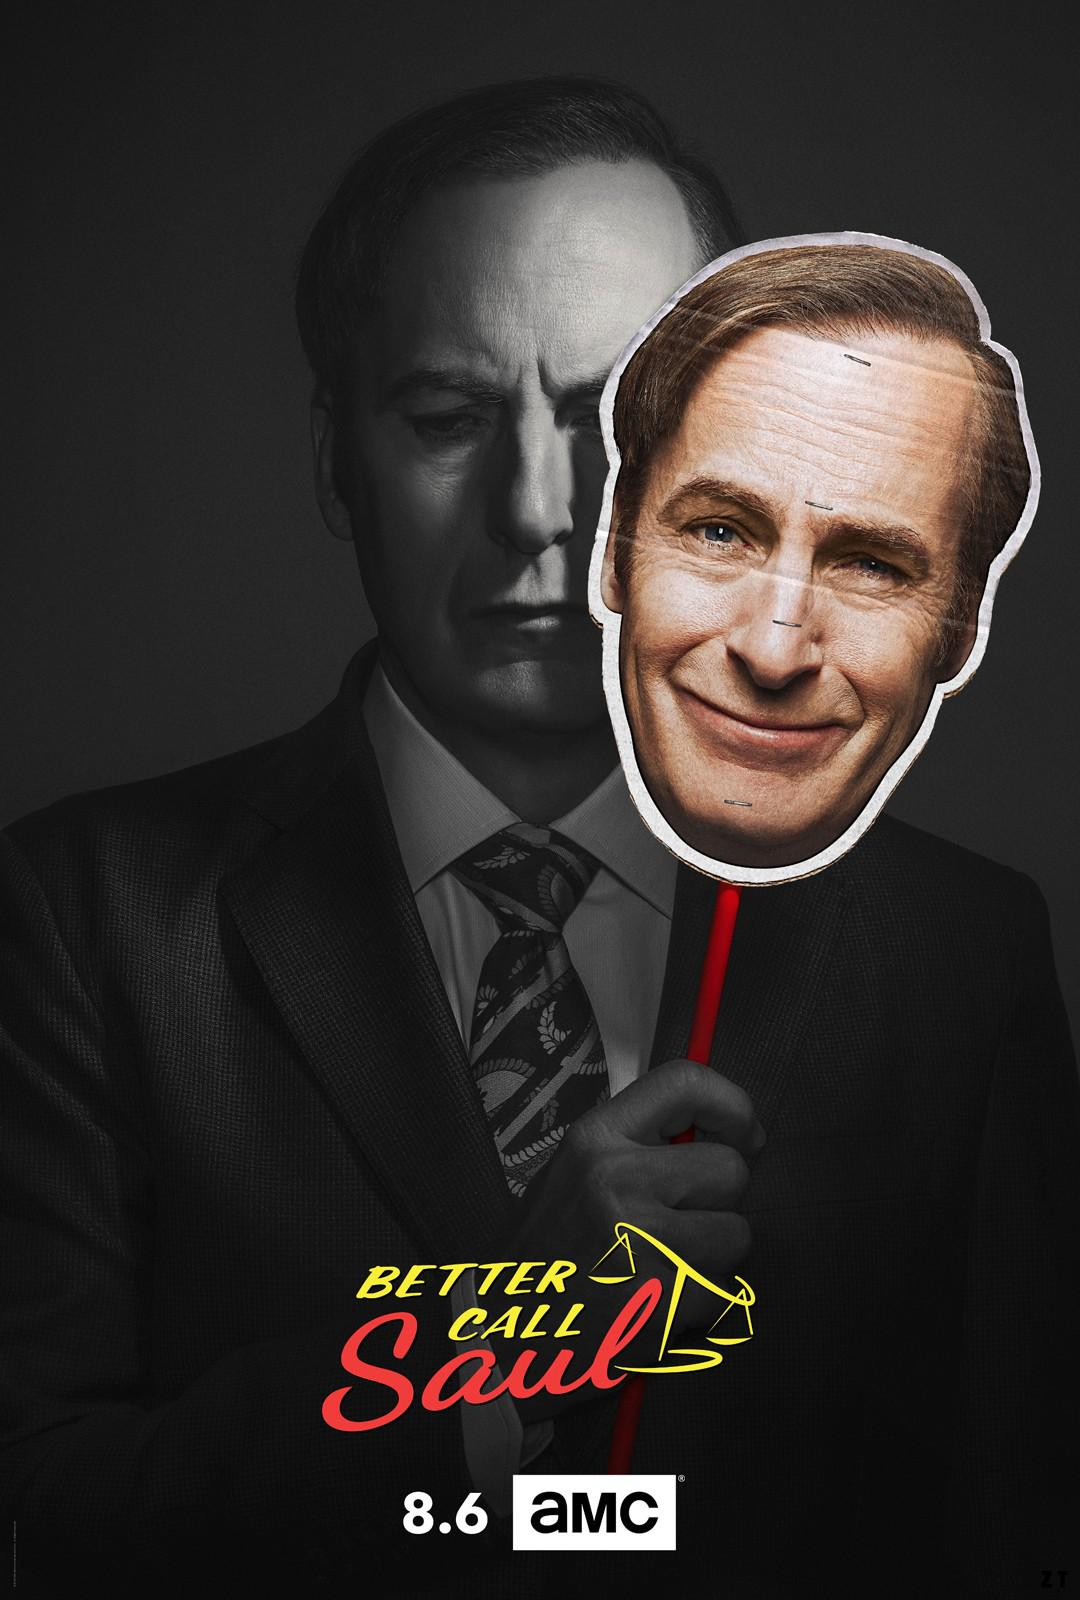 Telecharger Better Call Saul- Saison 4  [02/??] VOSTFR | Qualité HD 720p